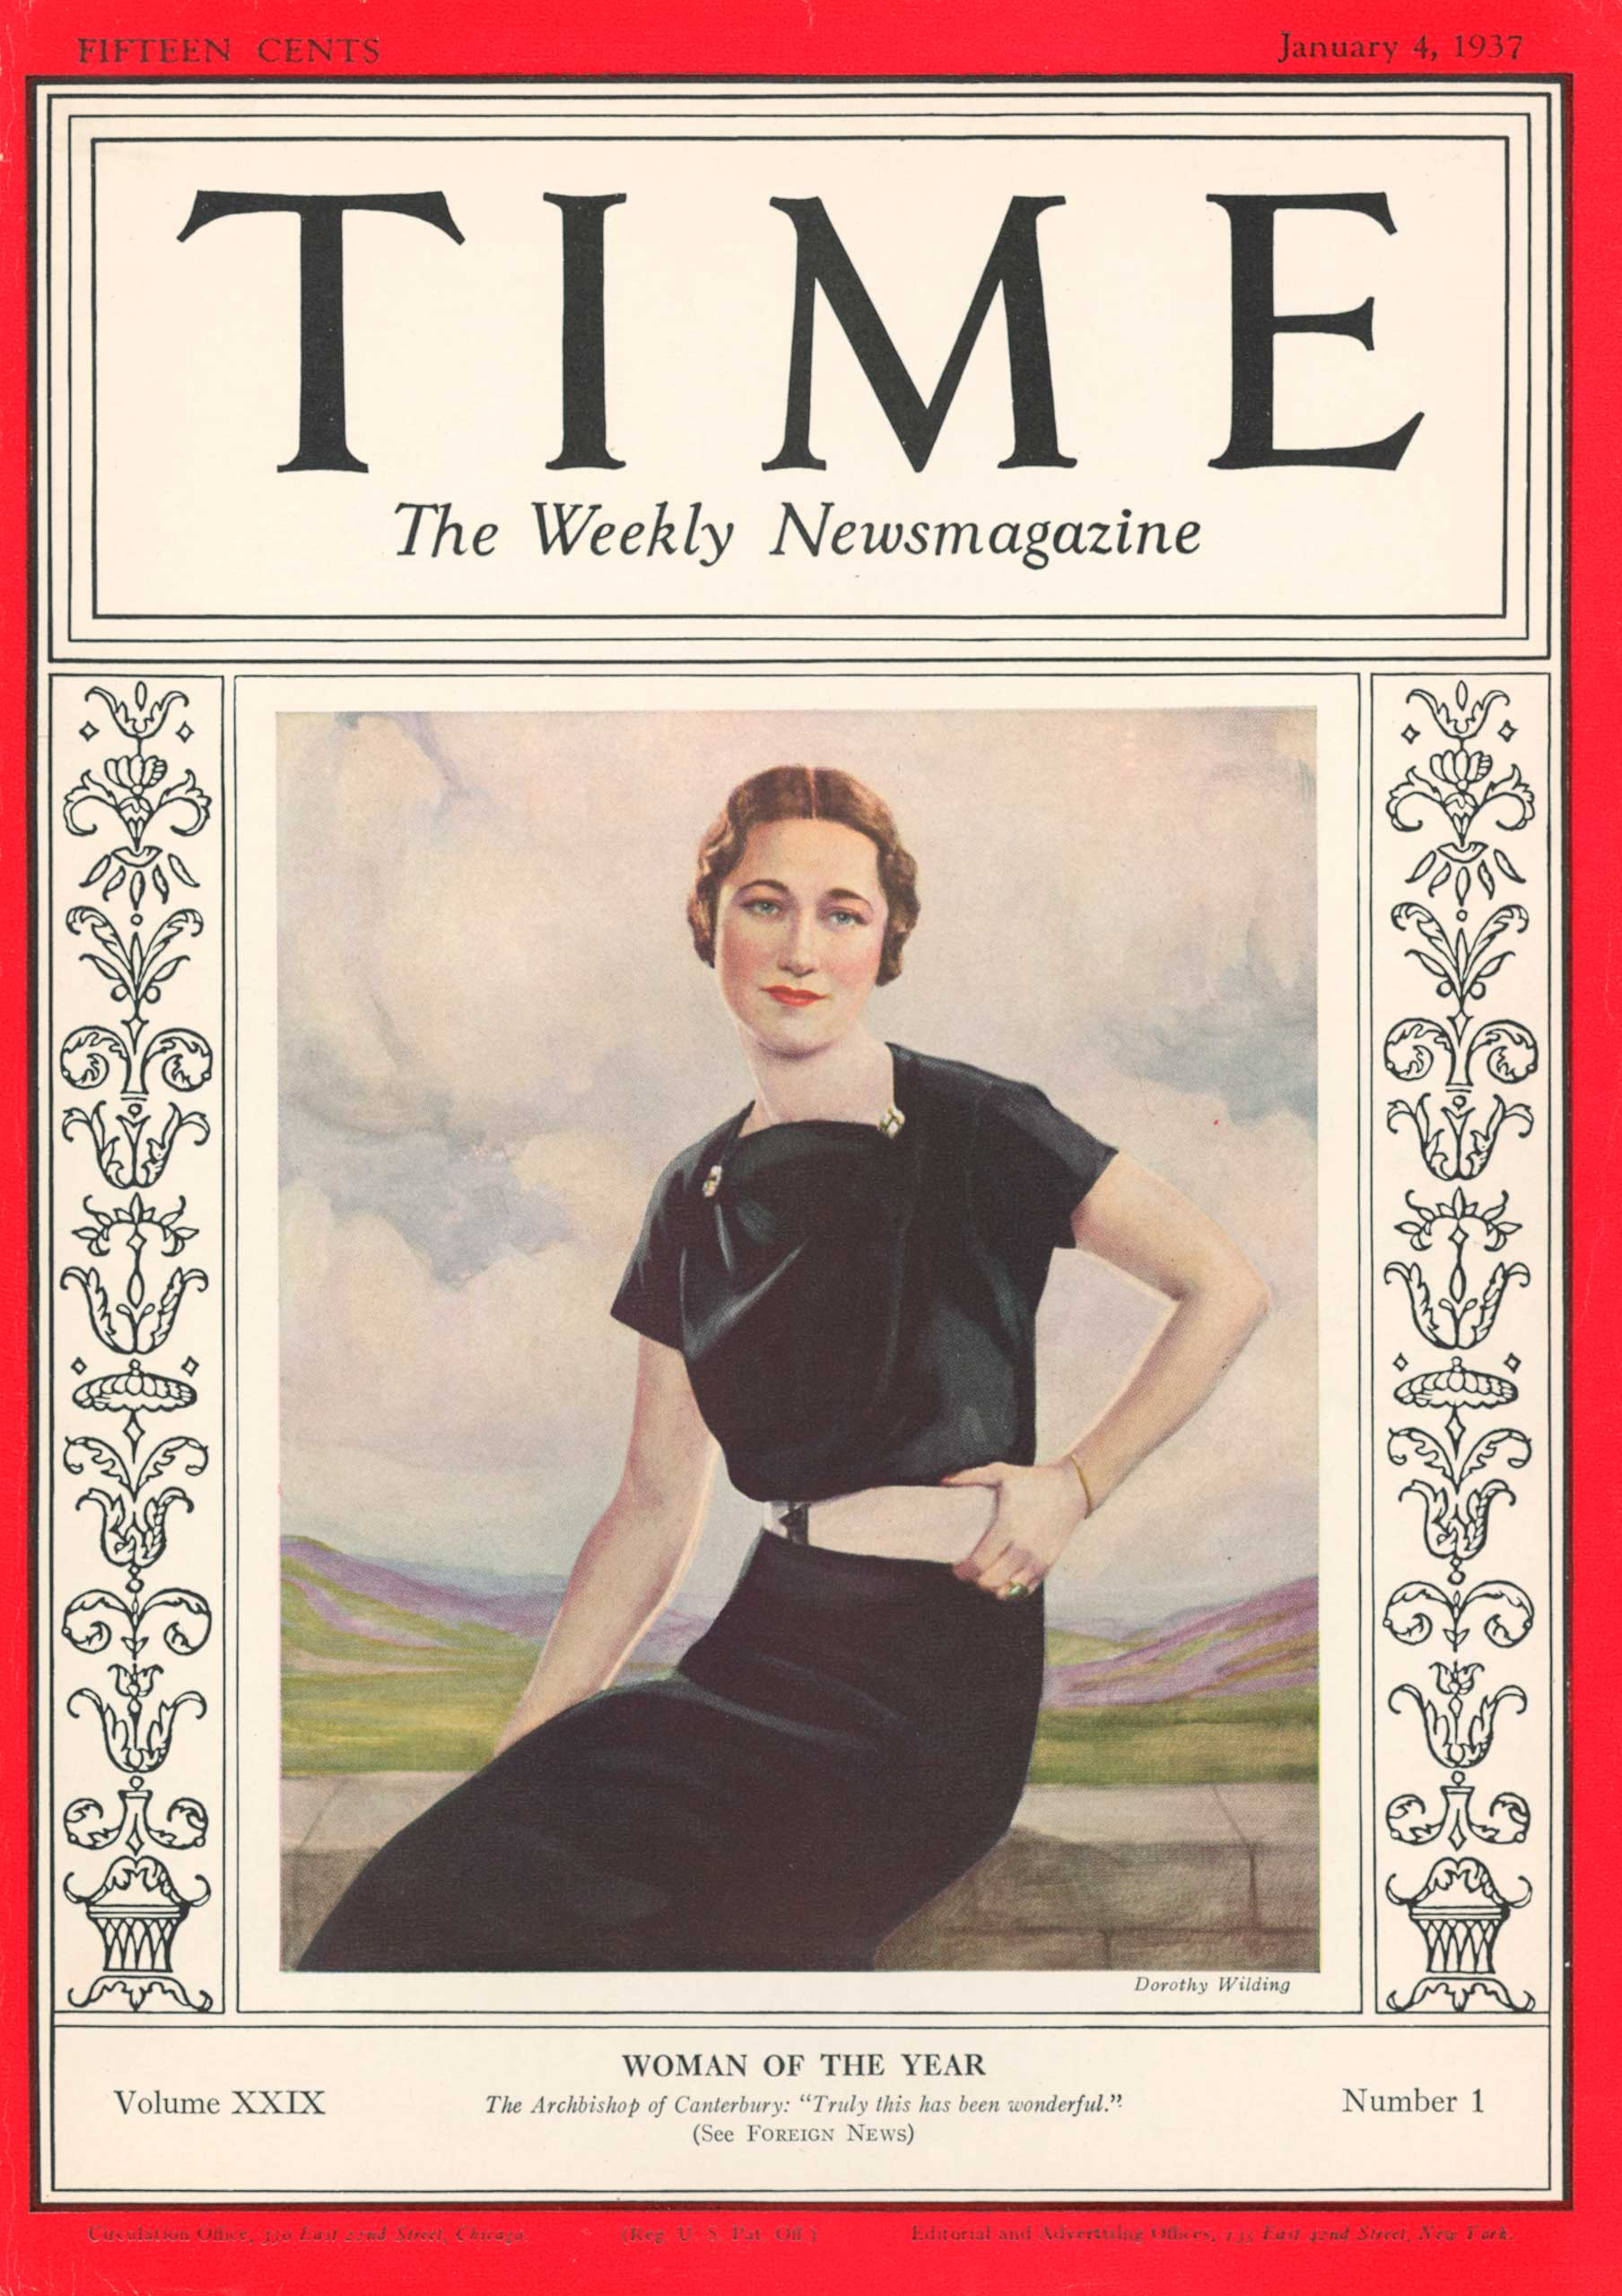 1936: Wallis Simpson